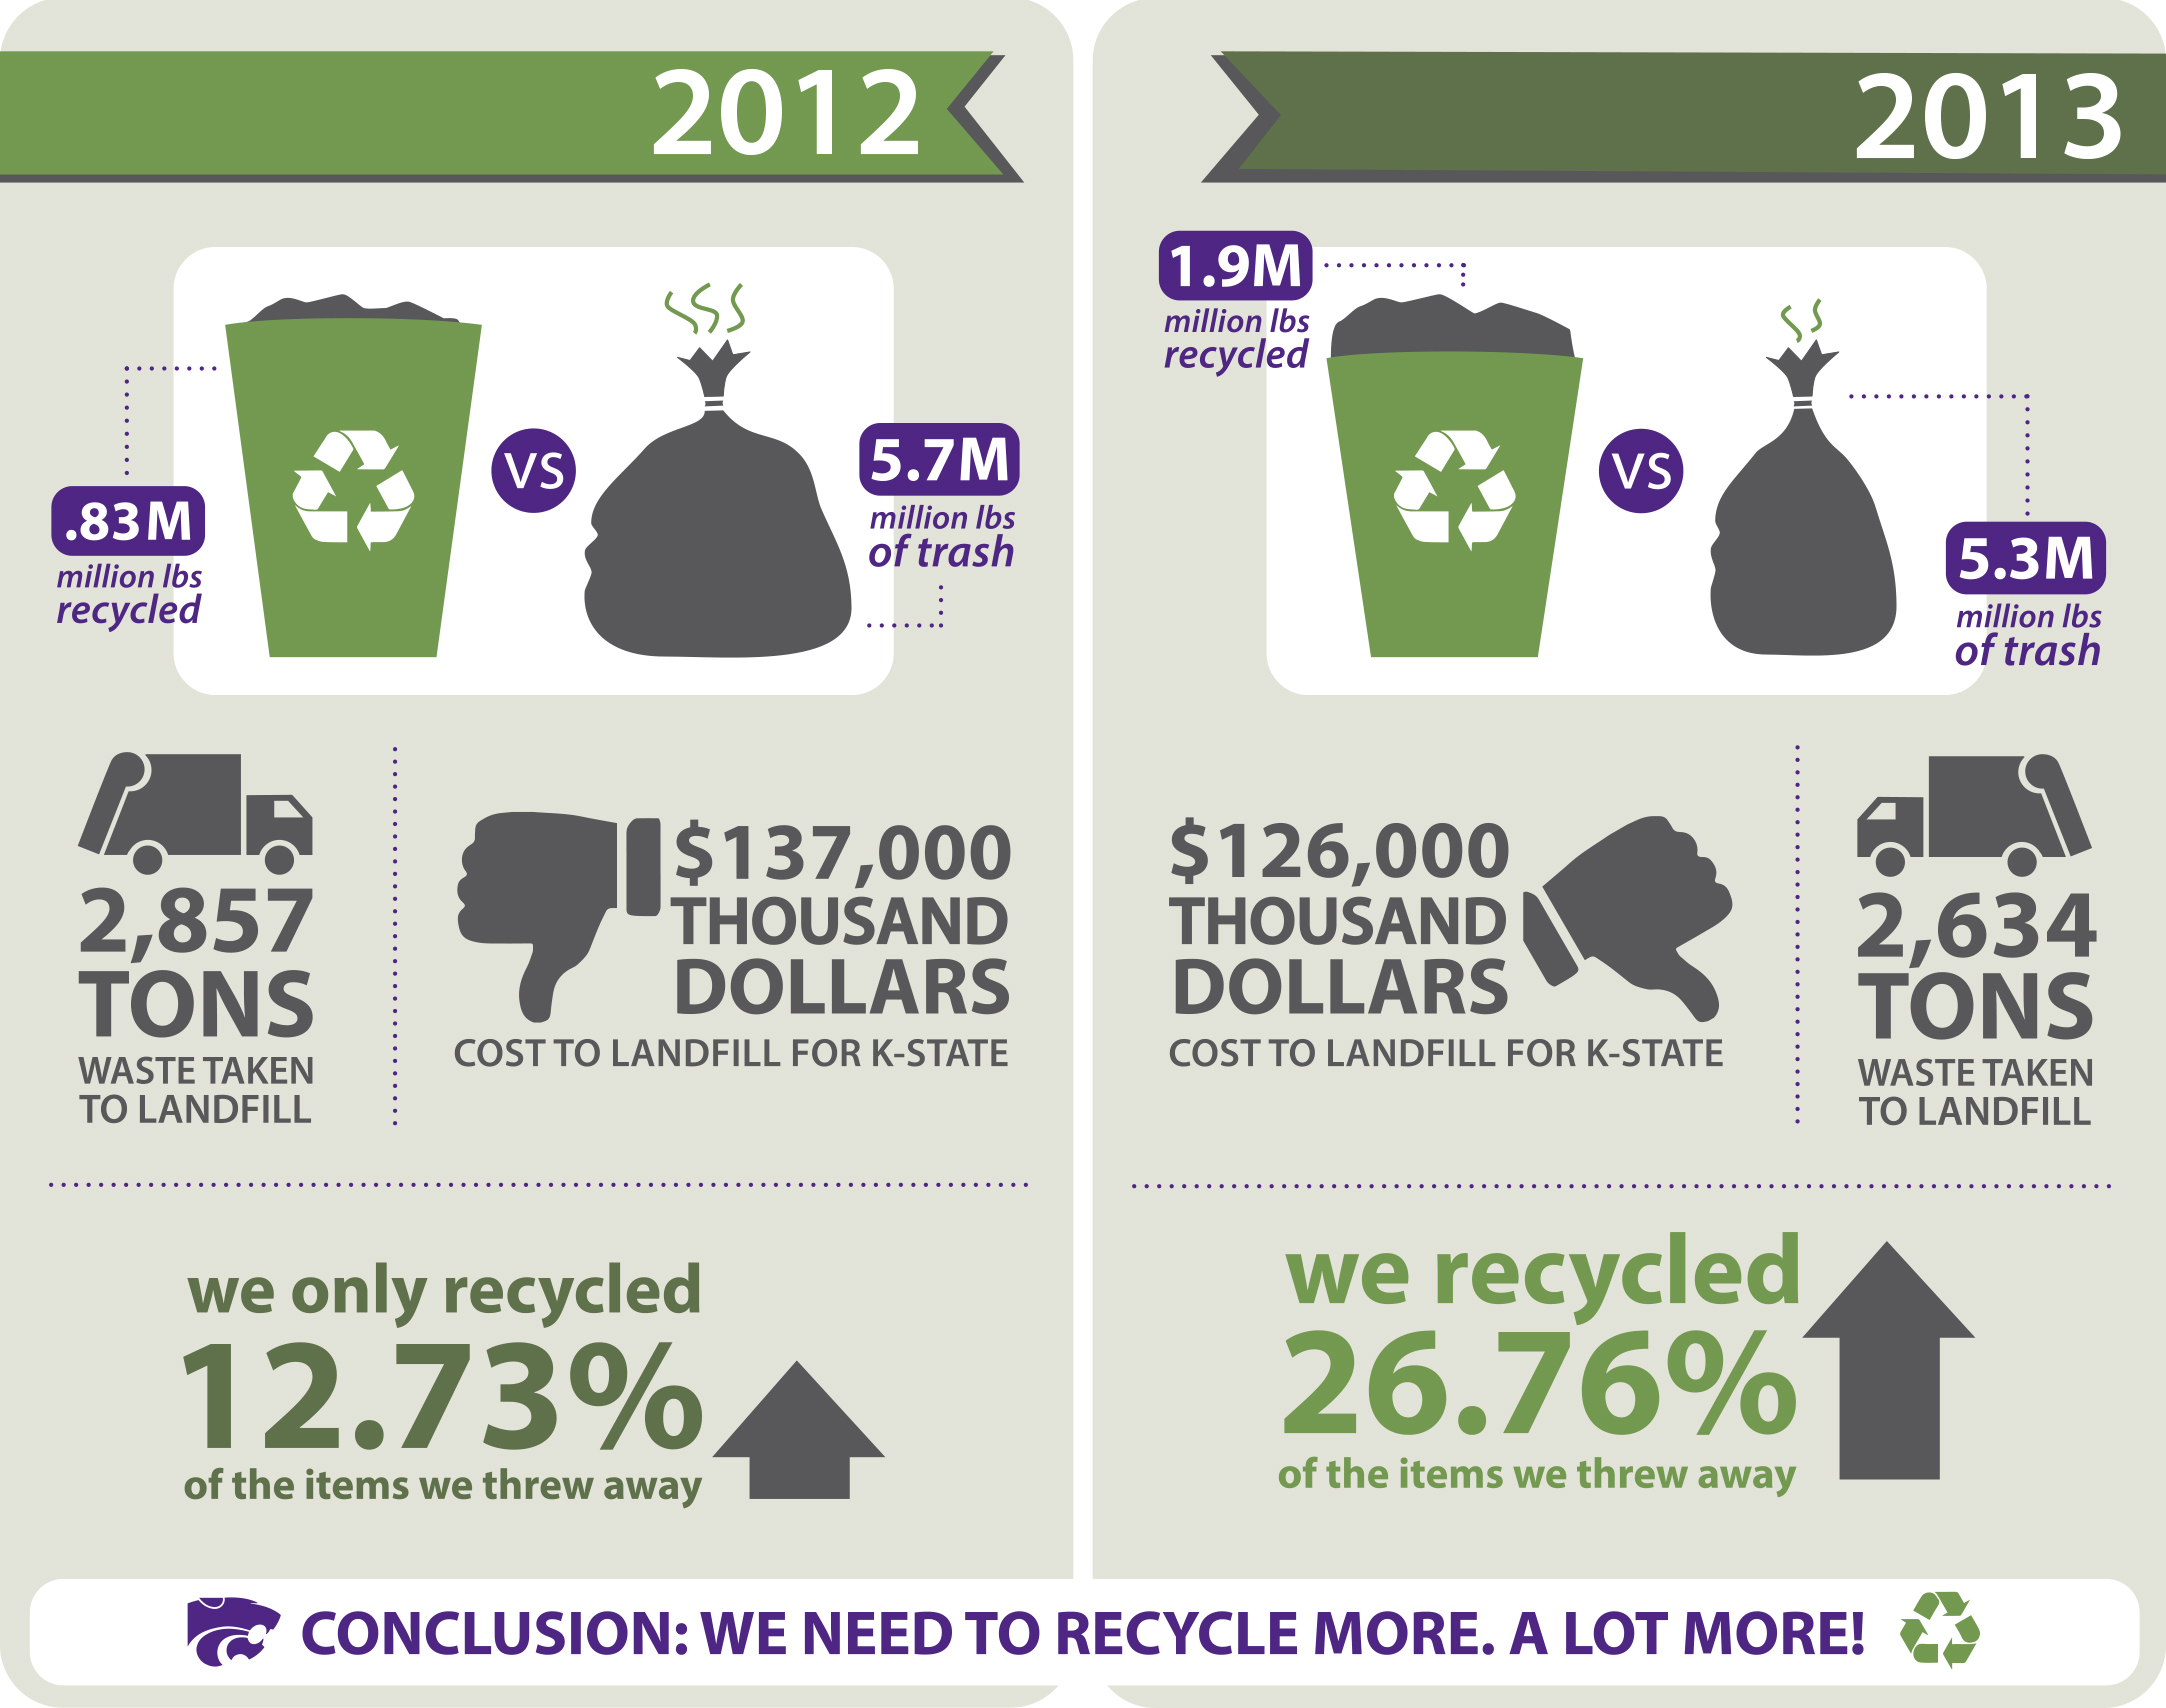 recycling stats 2012/2013